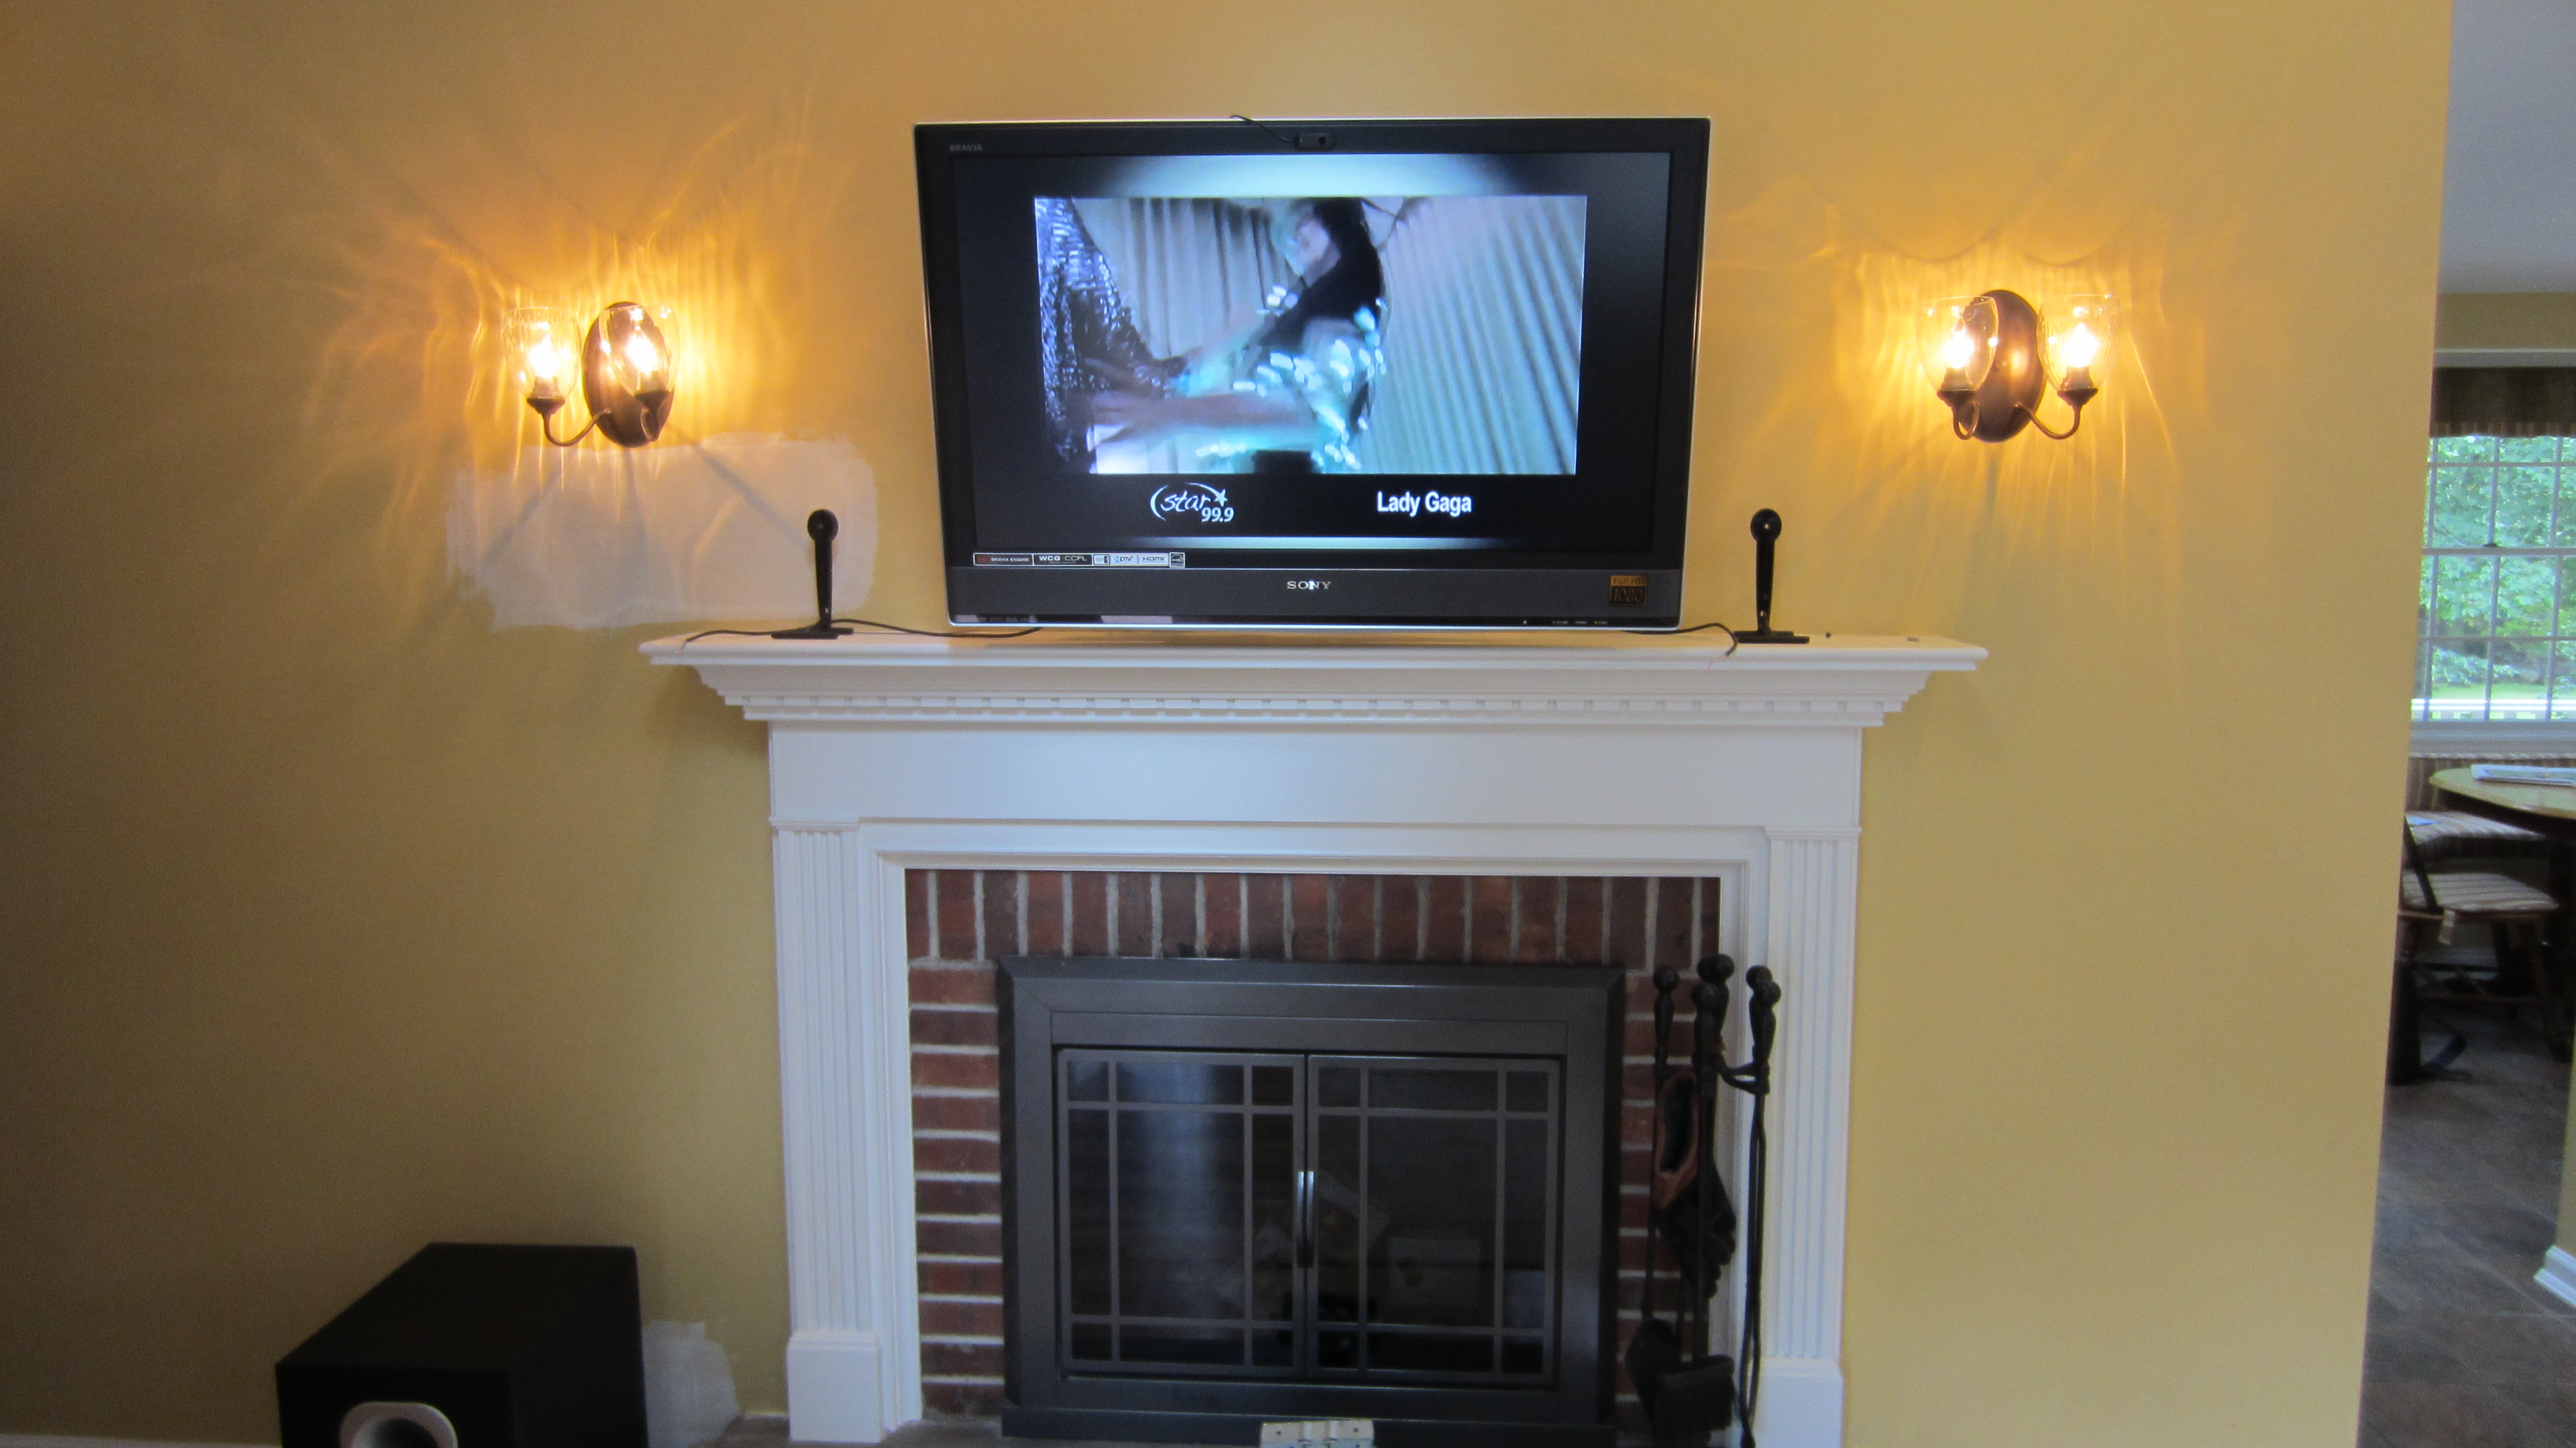 blog | Home Theater Installation | Page 7